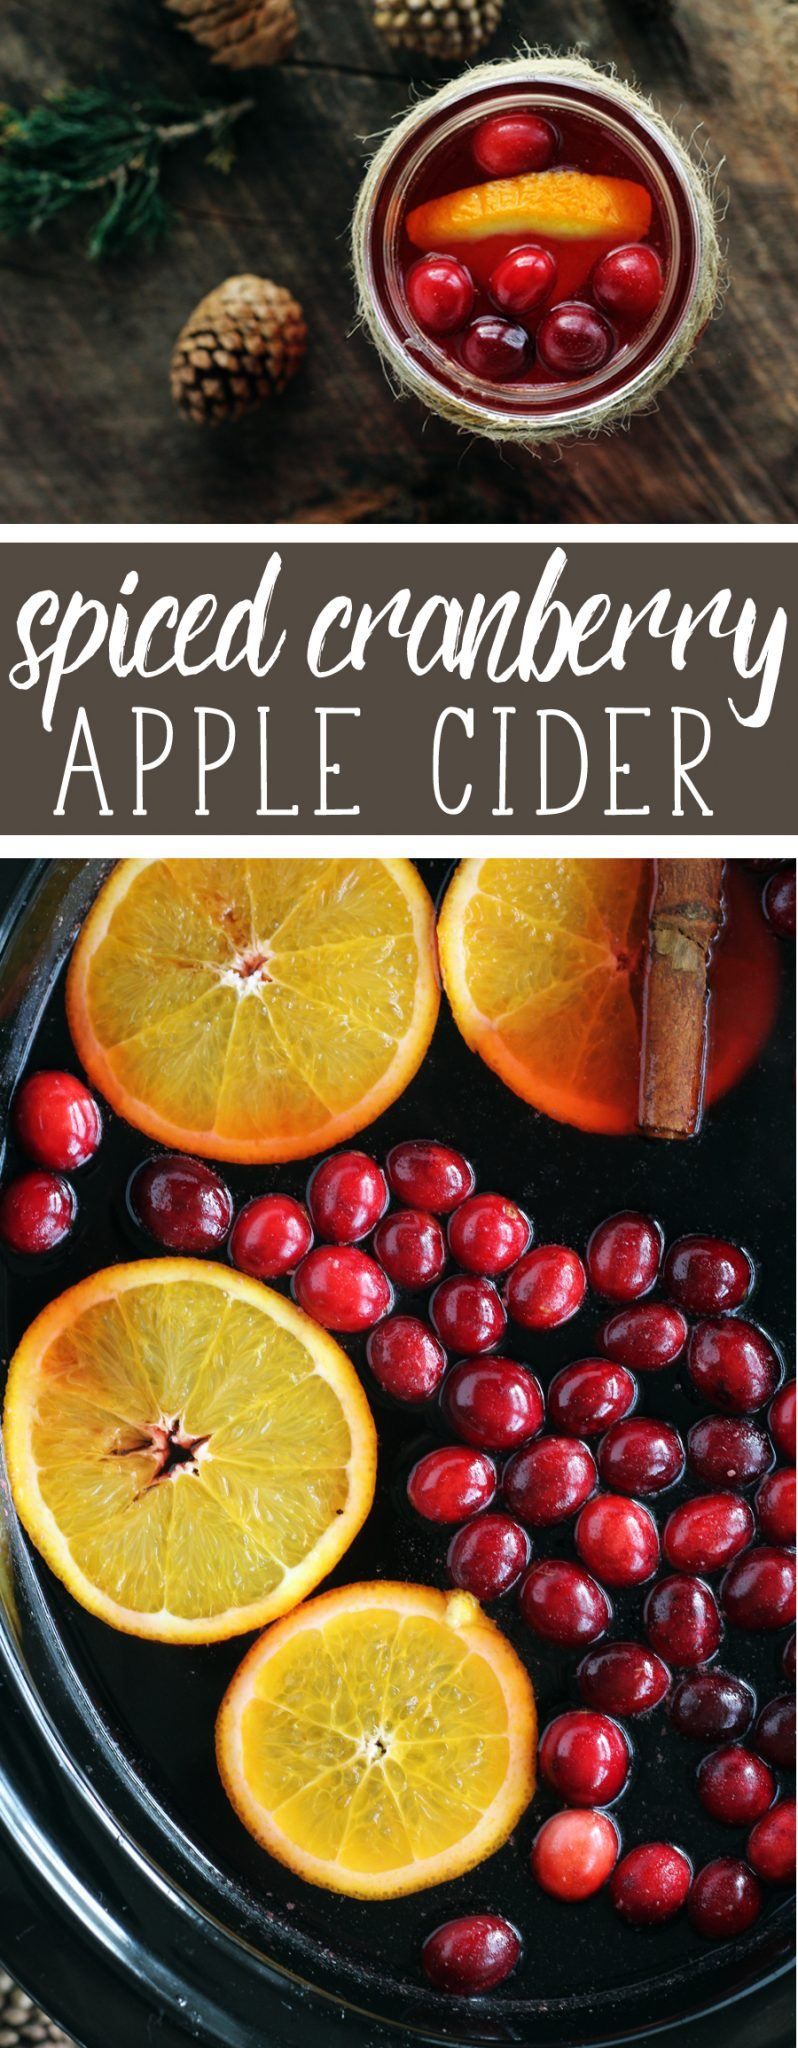 You are going to fall in love with the holiday all over again. Warm + cozy Spiced Cranberry Apple Cider. Sweet, tart, spiced and warm. #Christmas #AppleCider